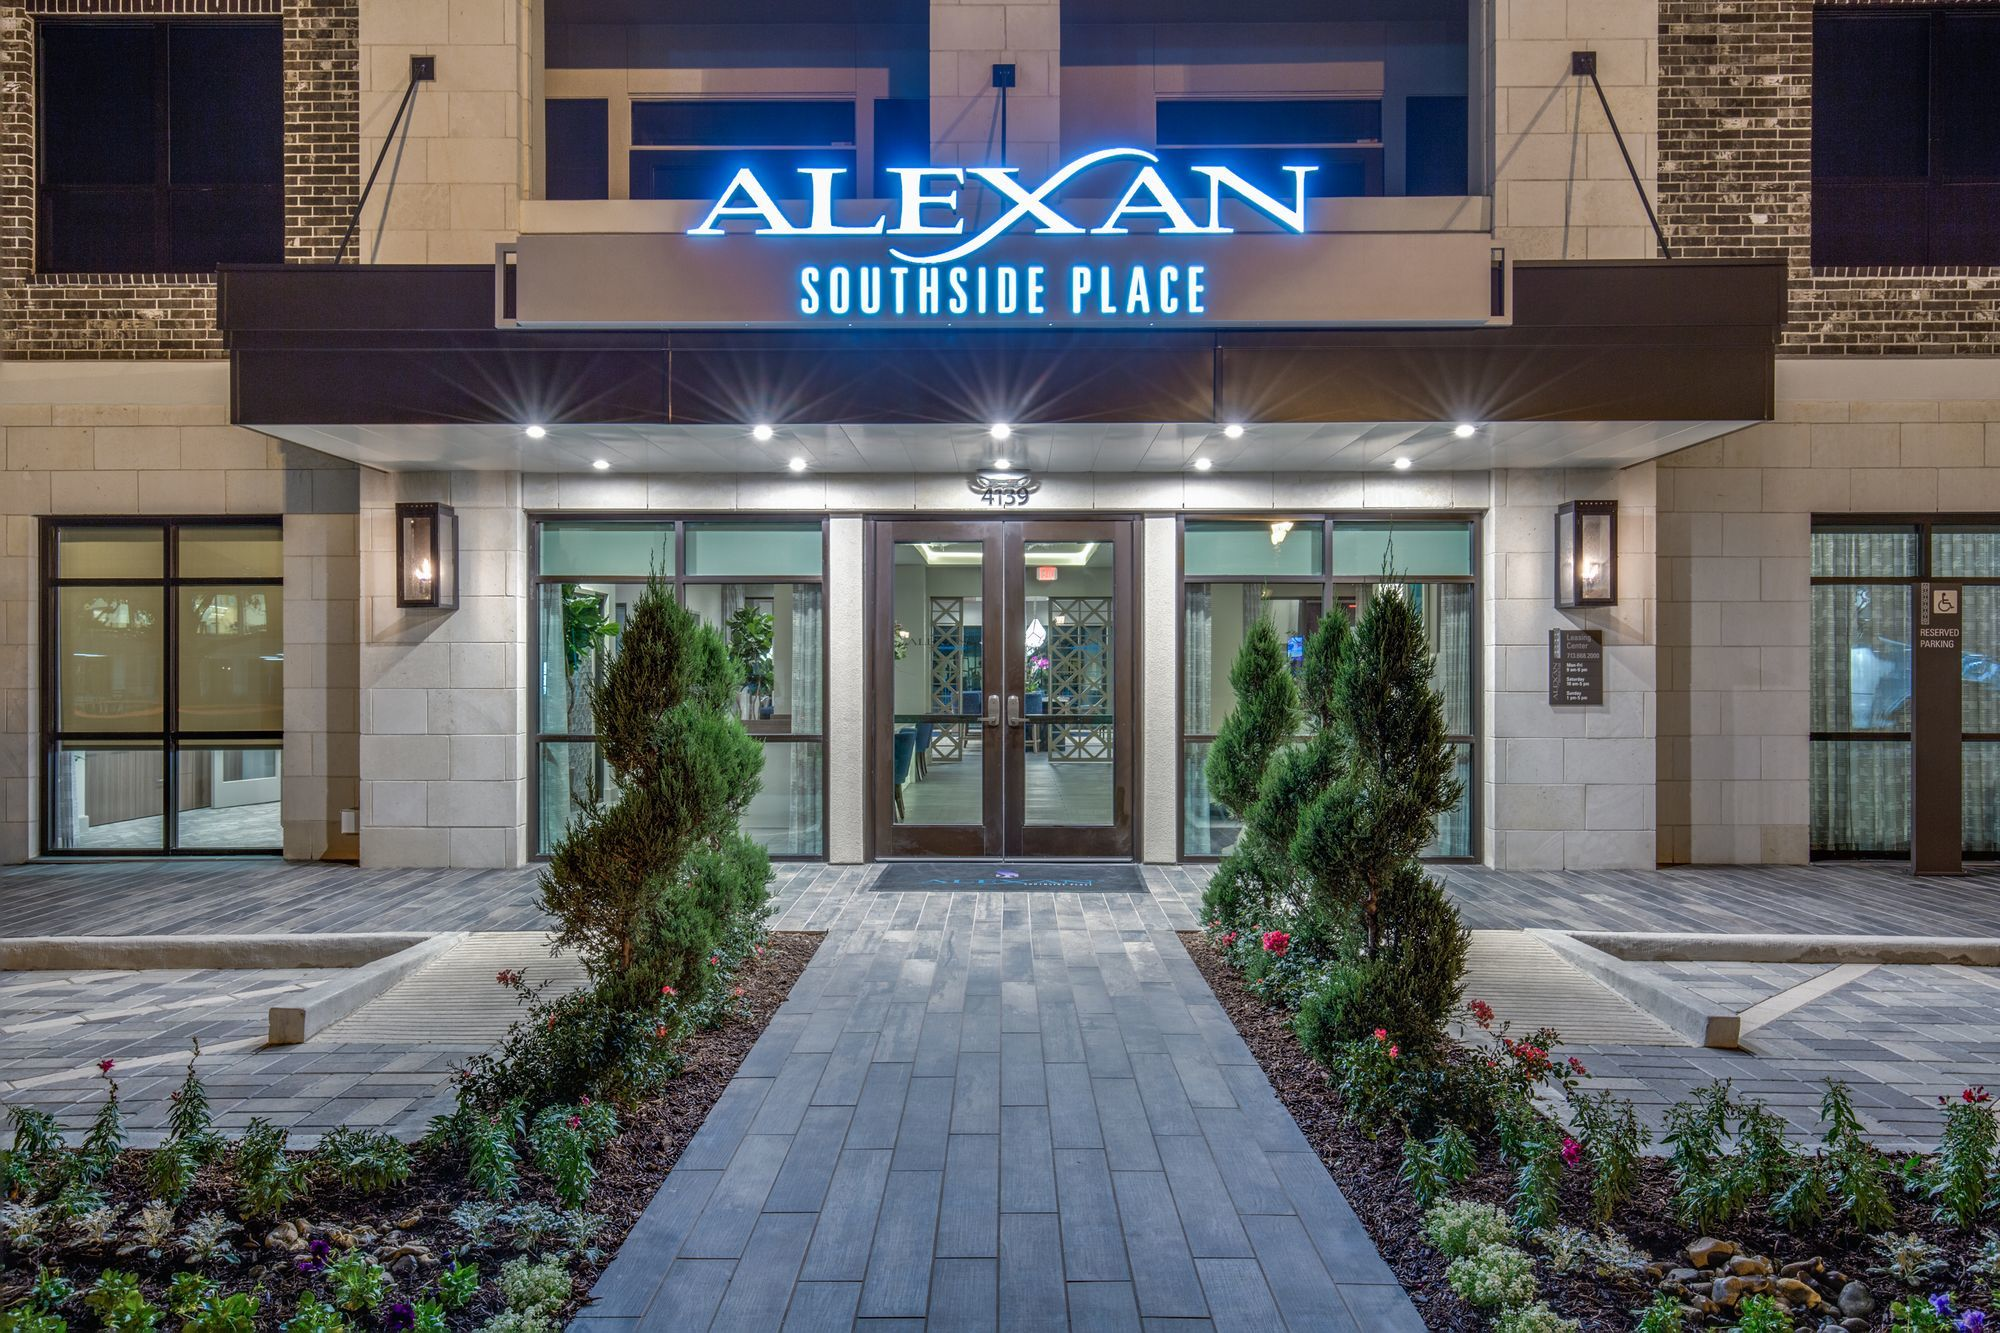 Alexan Southside Place